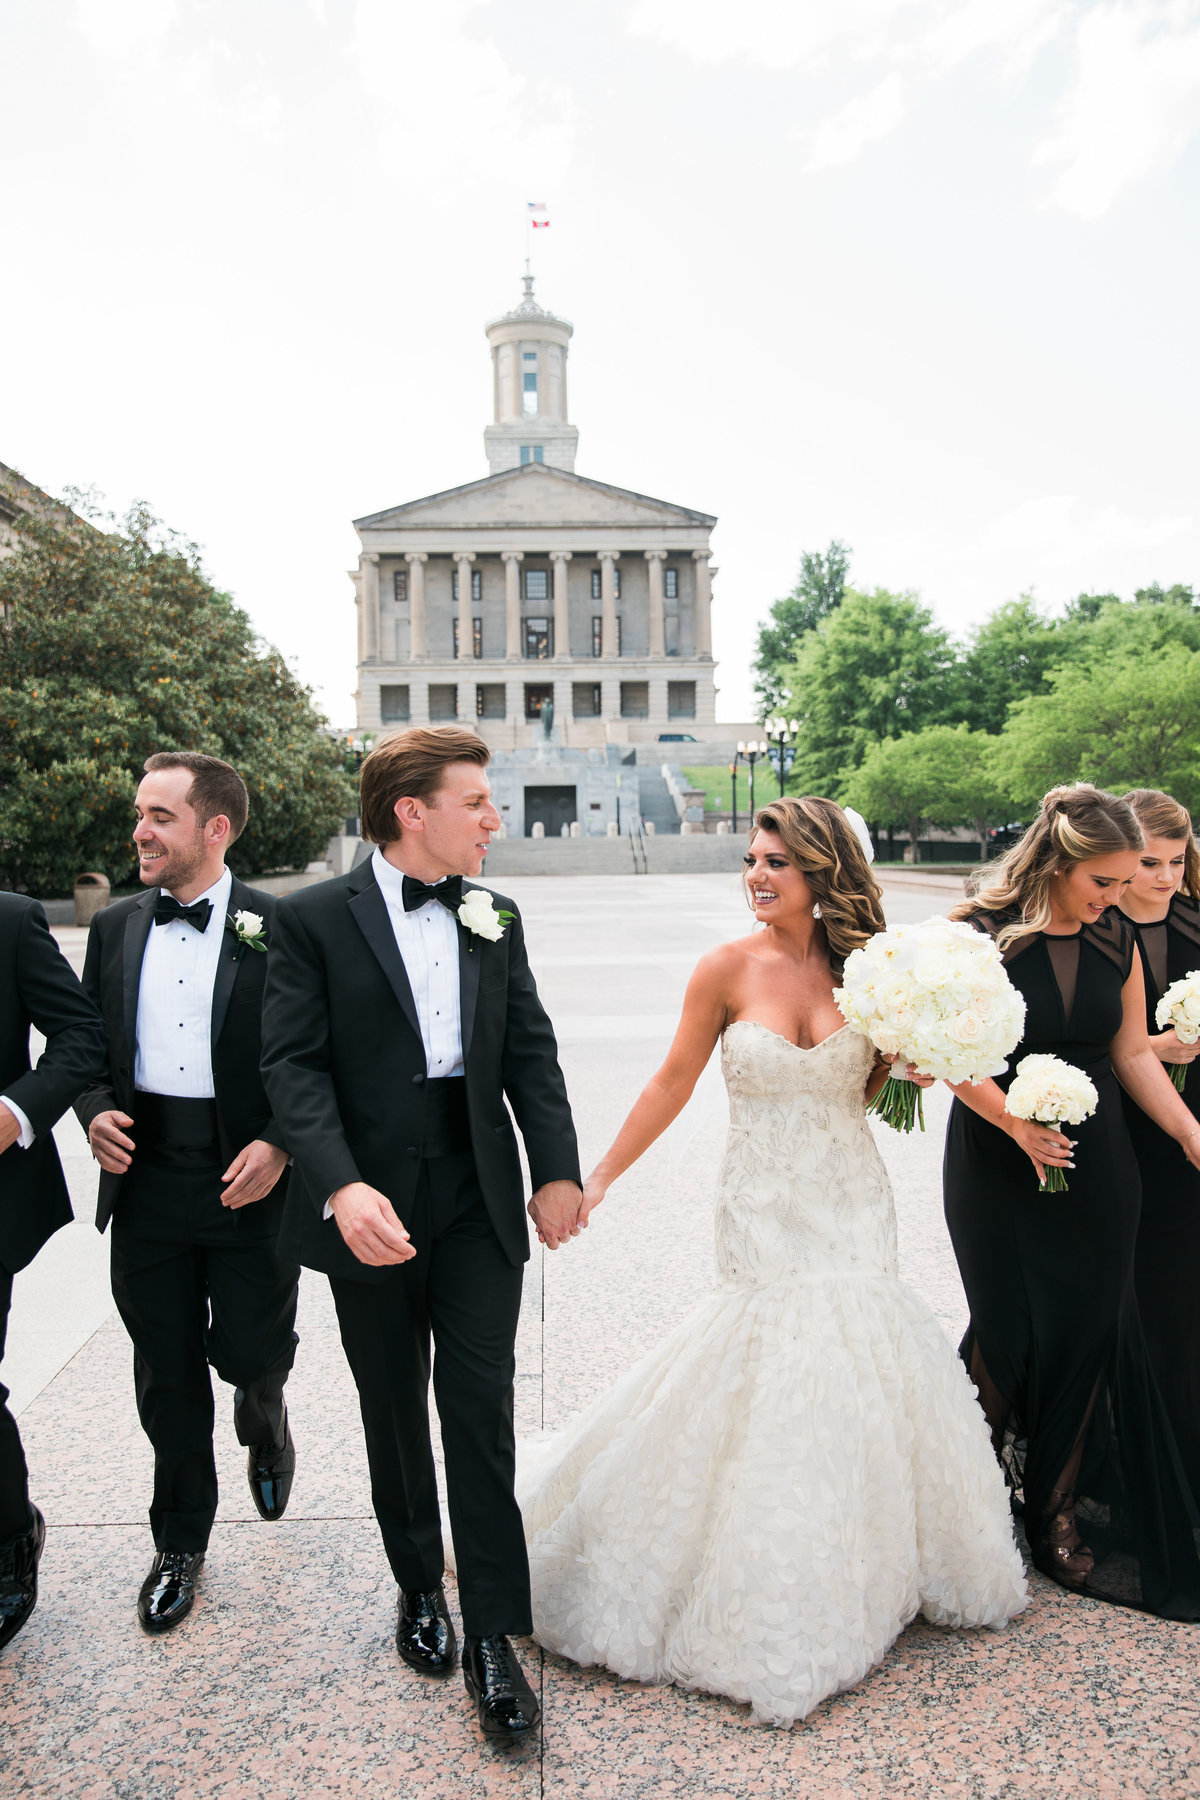 Wedding party with Tennessee capital in the background.